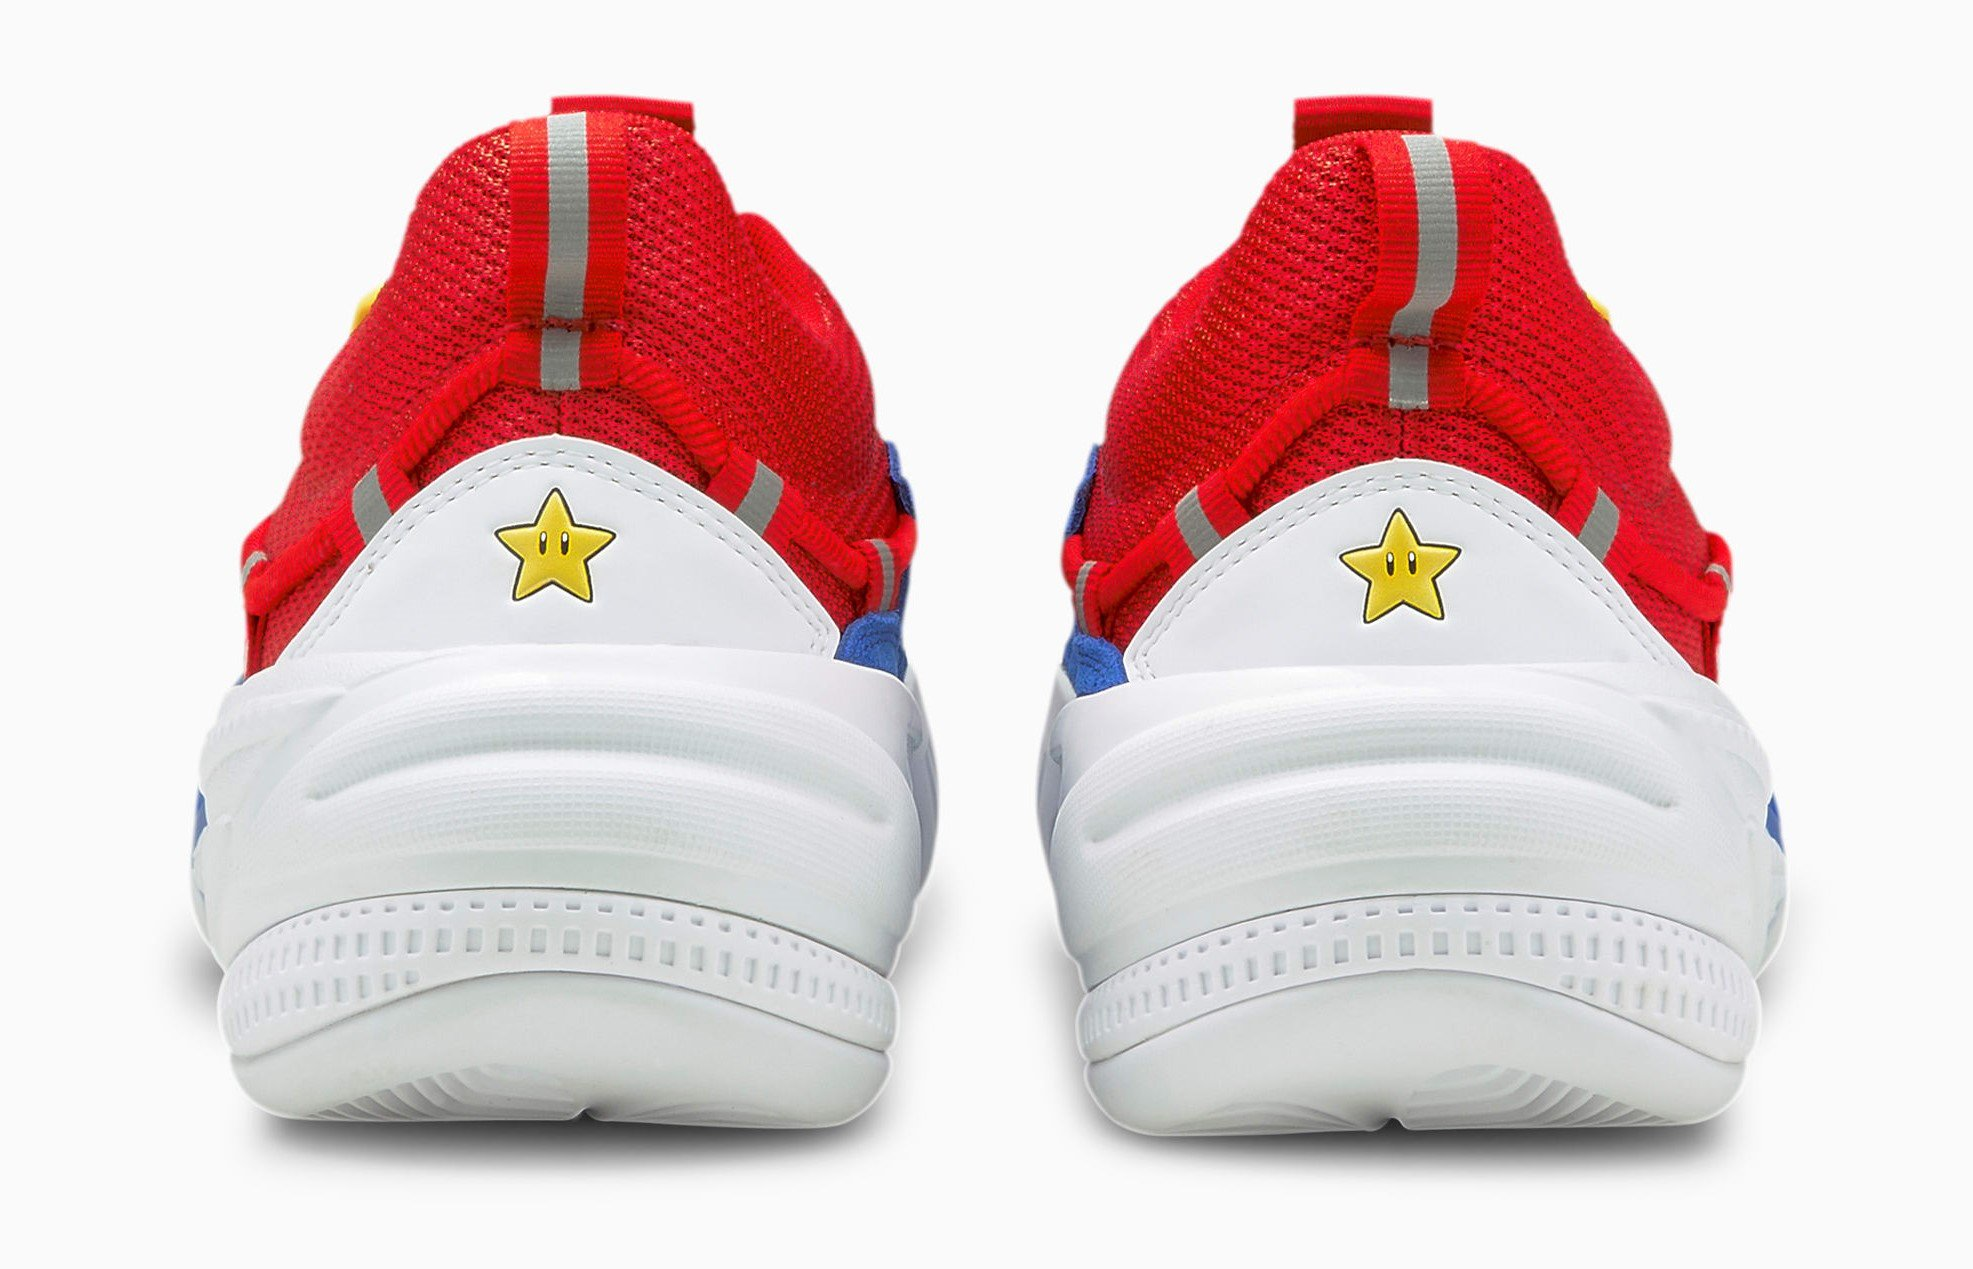 Puma RS-Dreamer sneakers inspired by Super Mario Bros. are out now 14